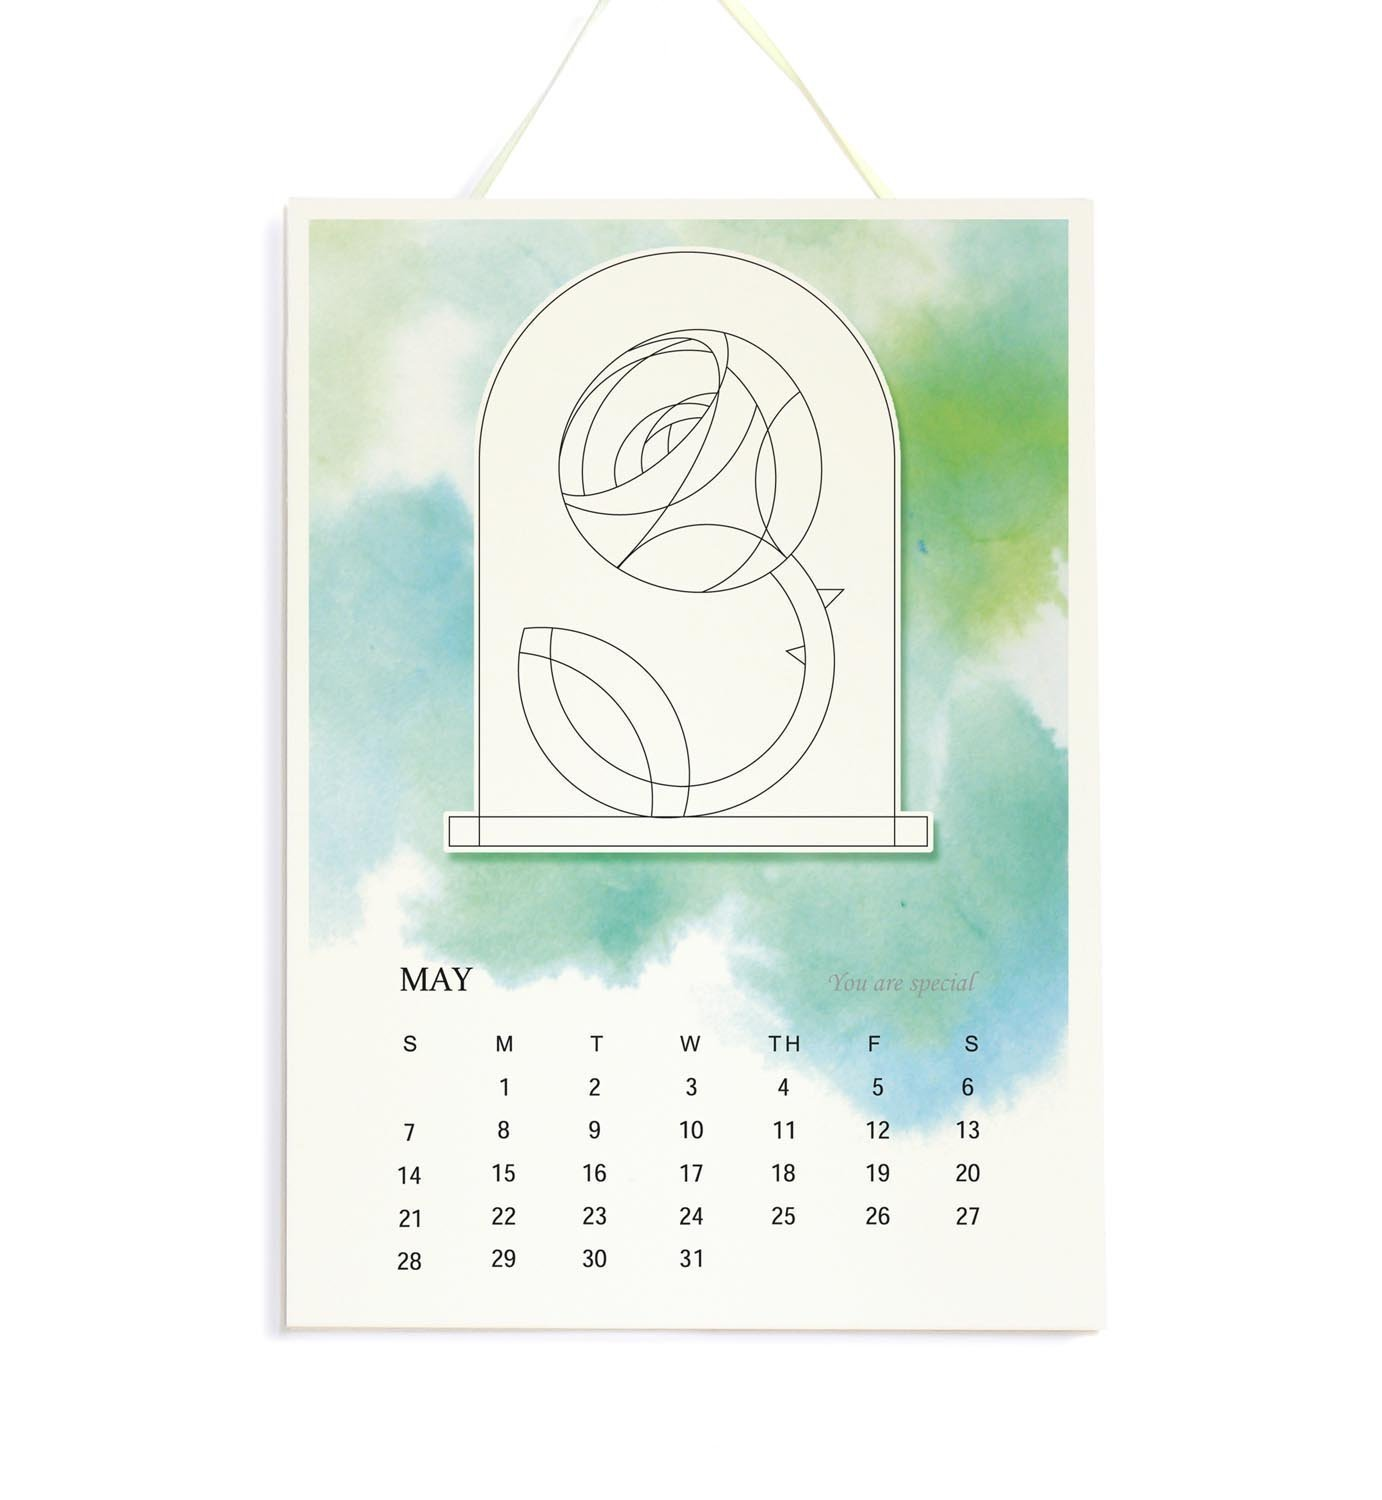 Little Prince - 2018 Wall Calendar, A4 Watercolor Calendar, Children Room Decor, Gift for Le Petit Prince Fans, Kids, and Grow-up, Christmas Presents for Child and Grow-up by IGREANpainting